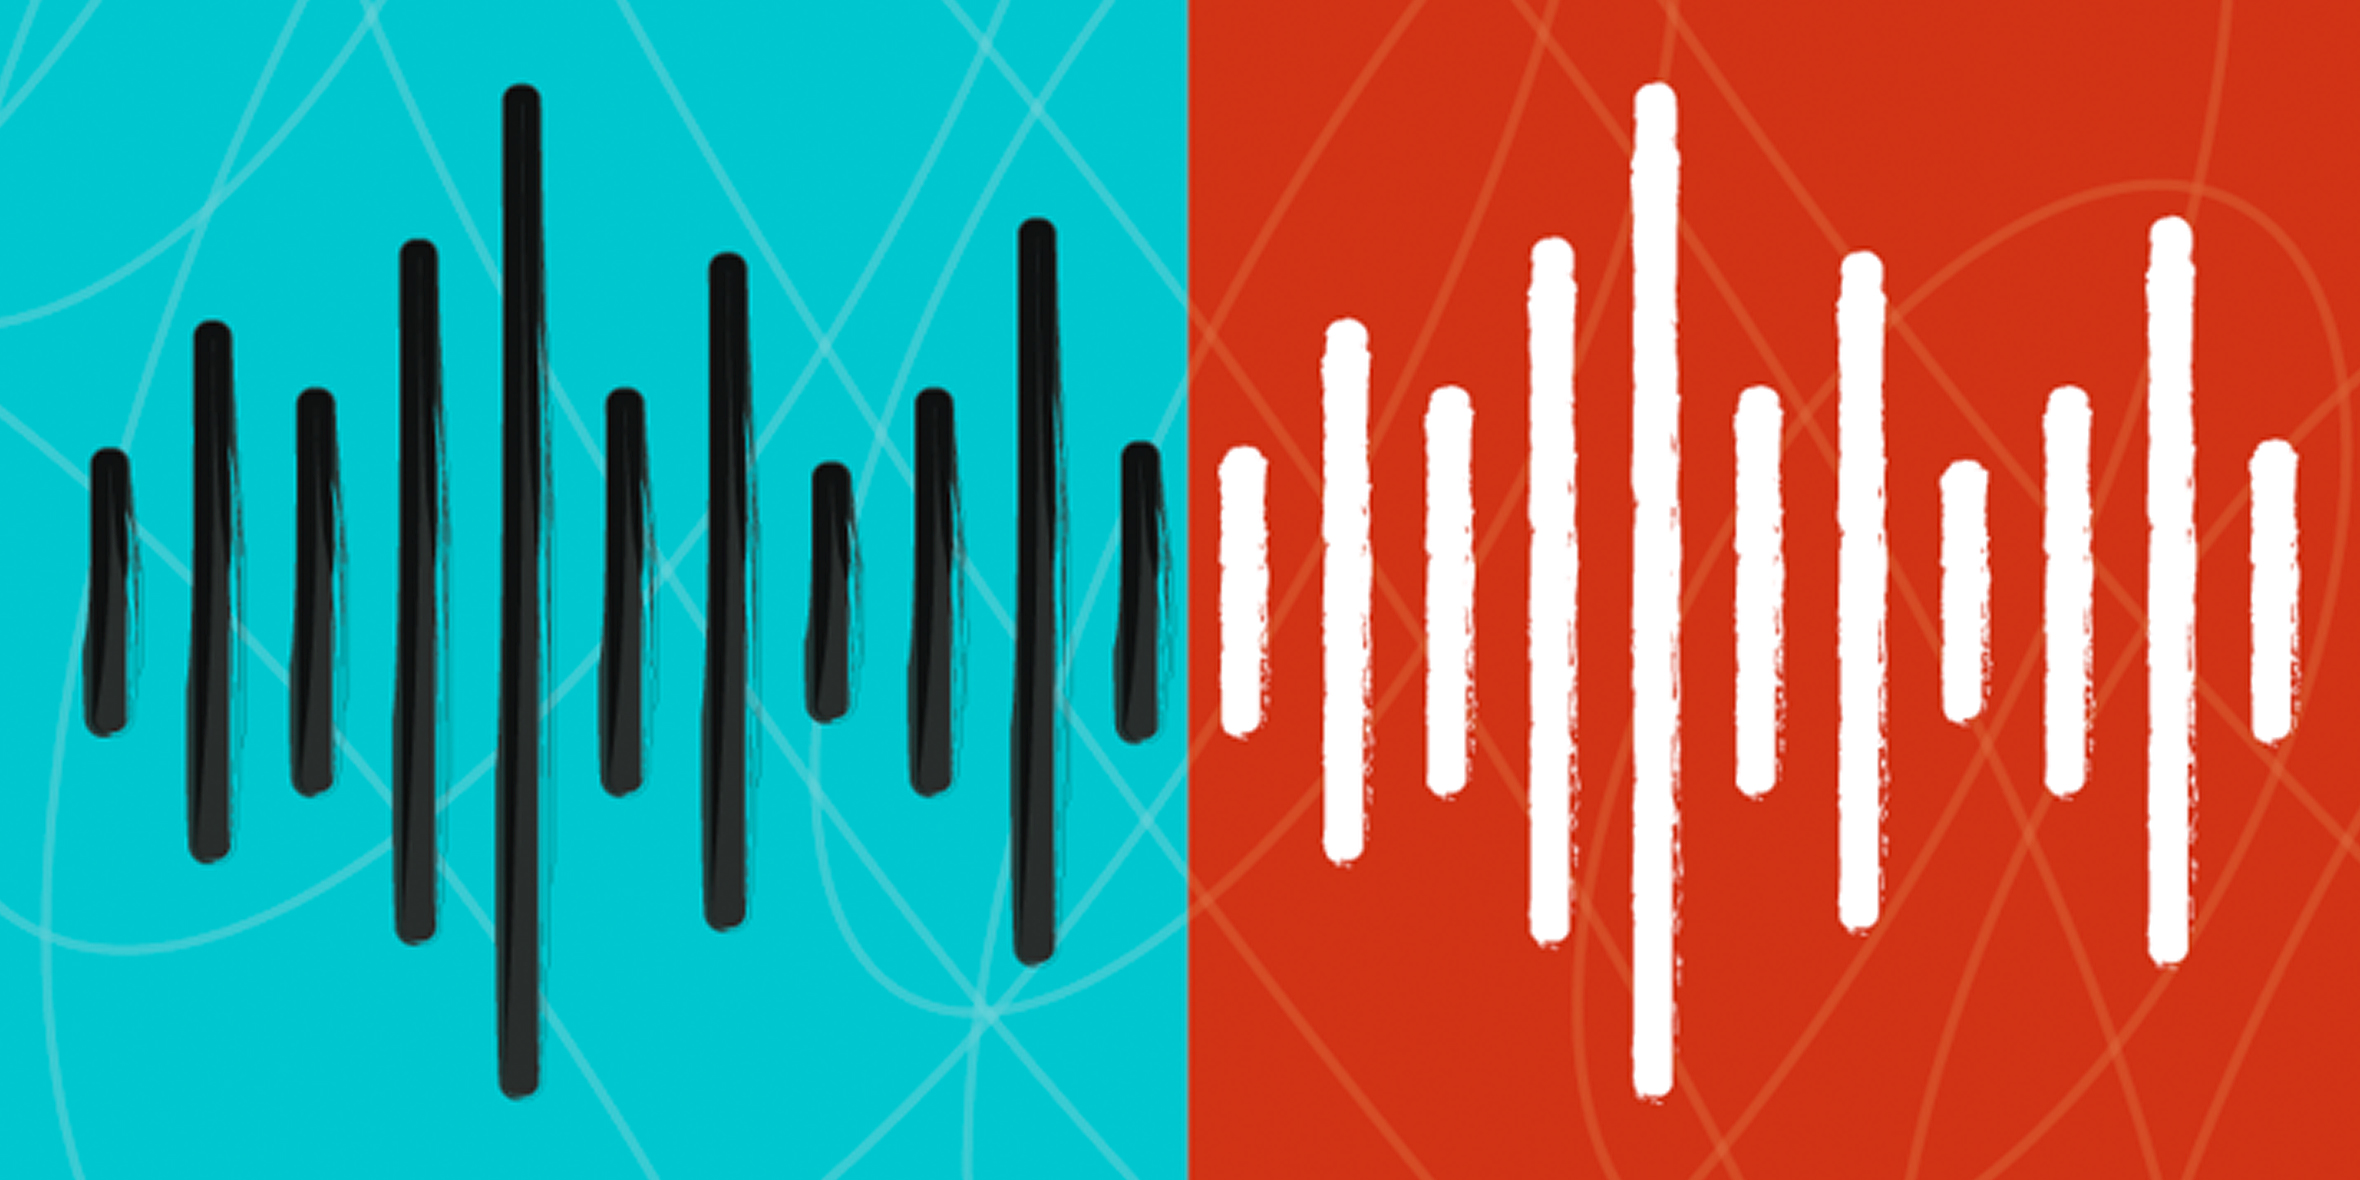 Stylized illustration of sound waves